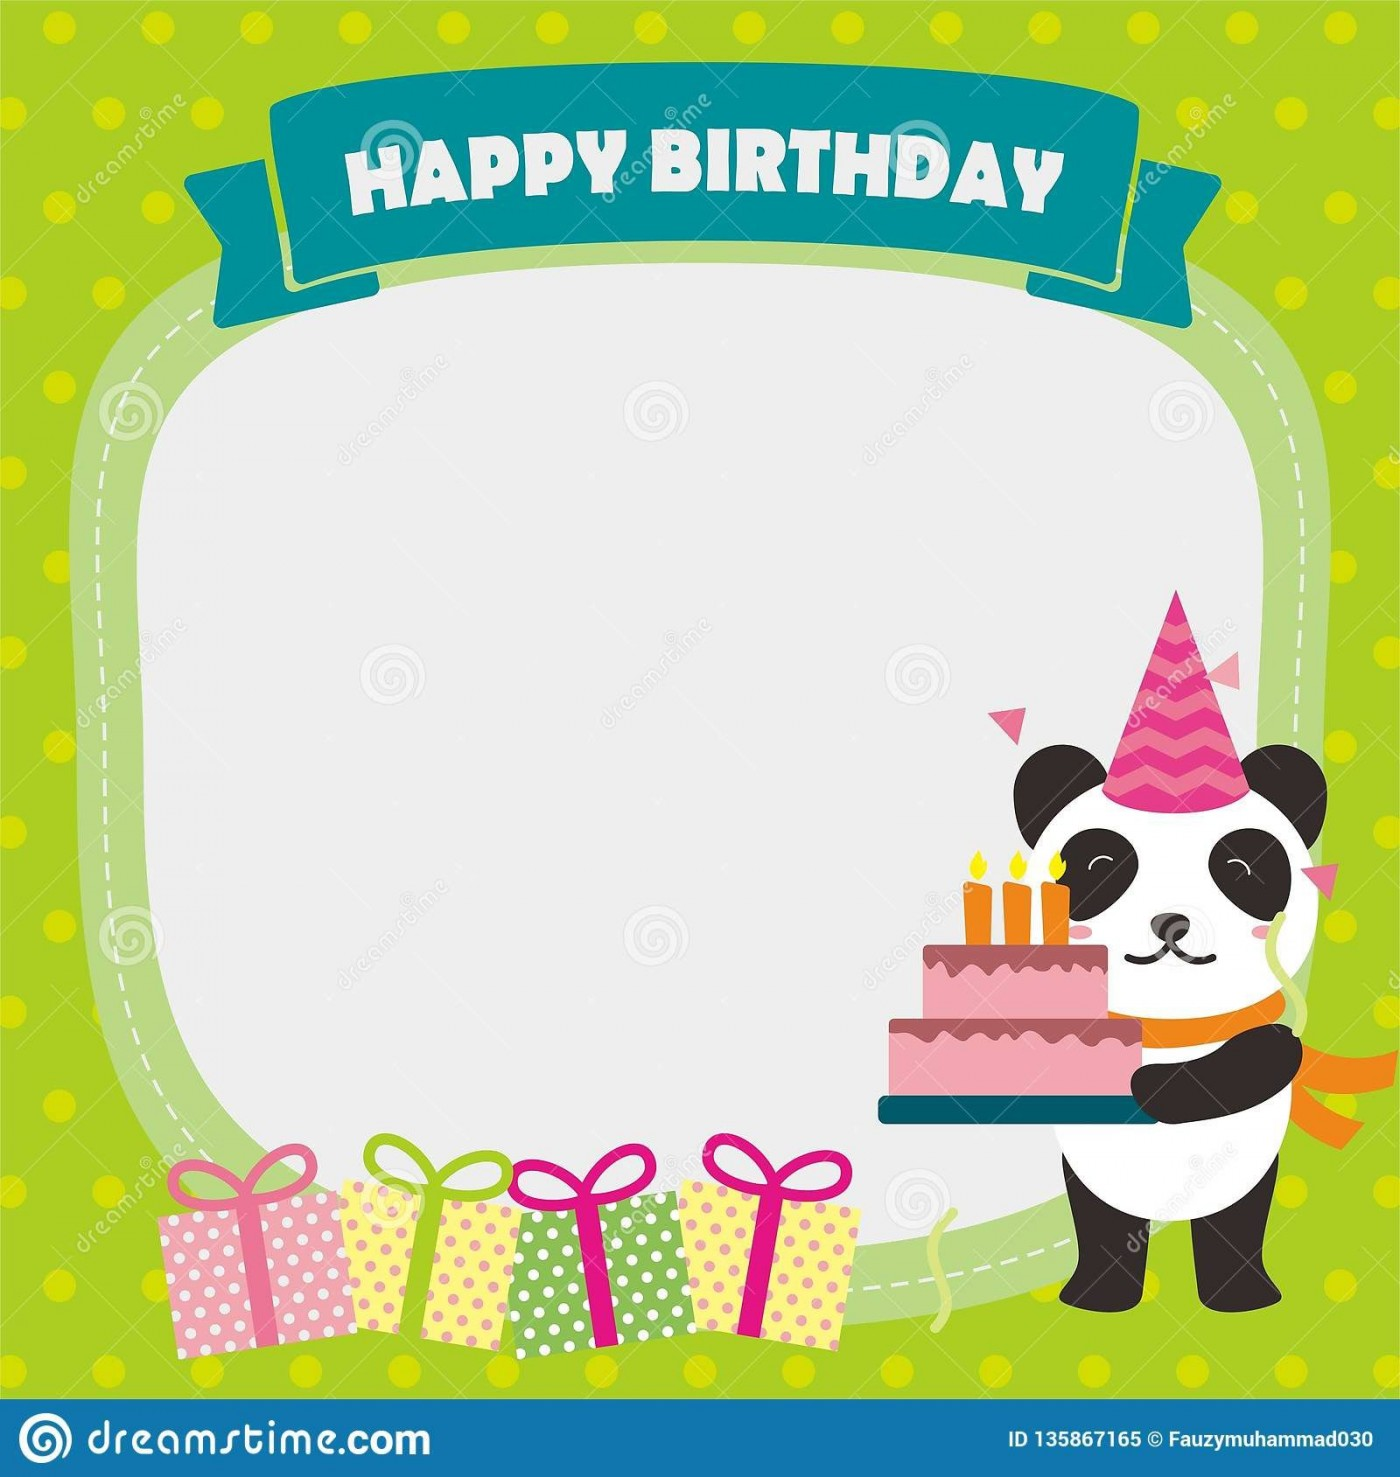 004 Top Template For Birthday Card Highest Clarity  Microsoft Word Design Happy1400